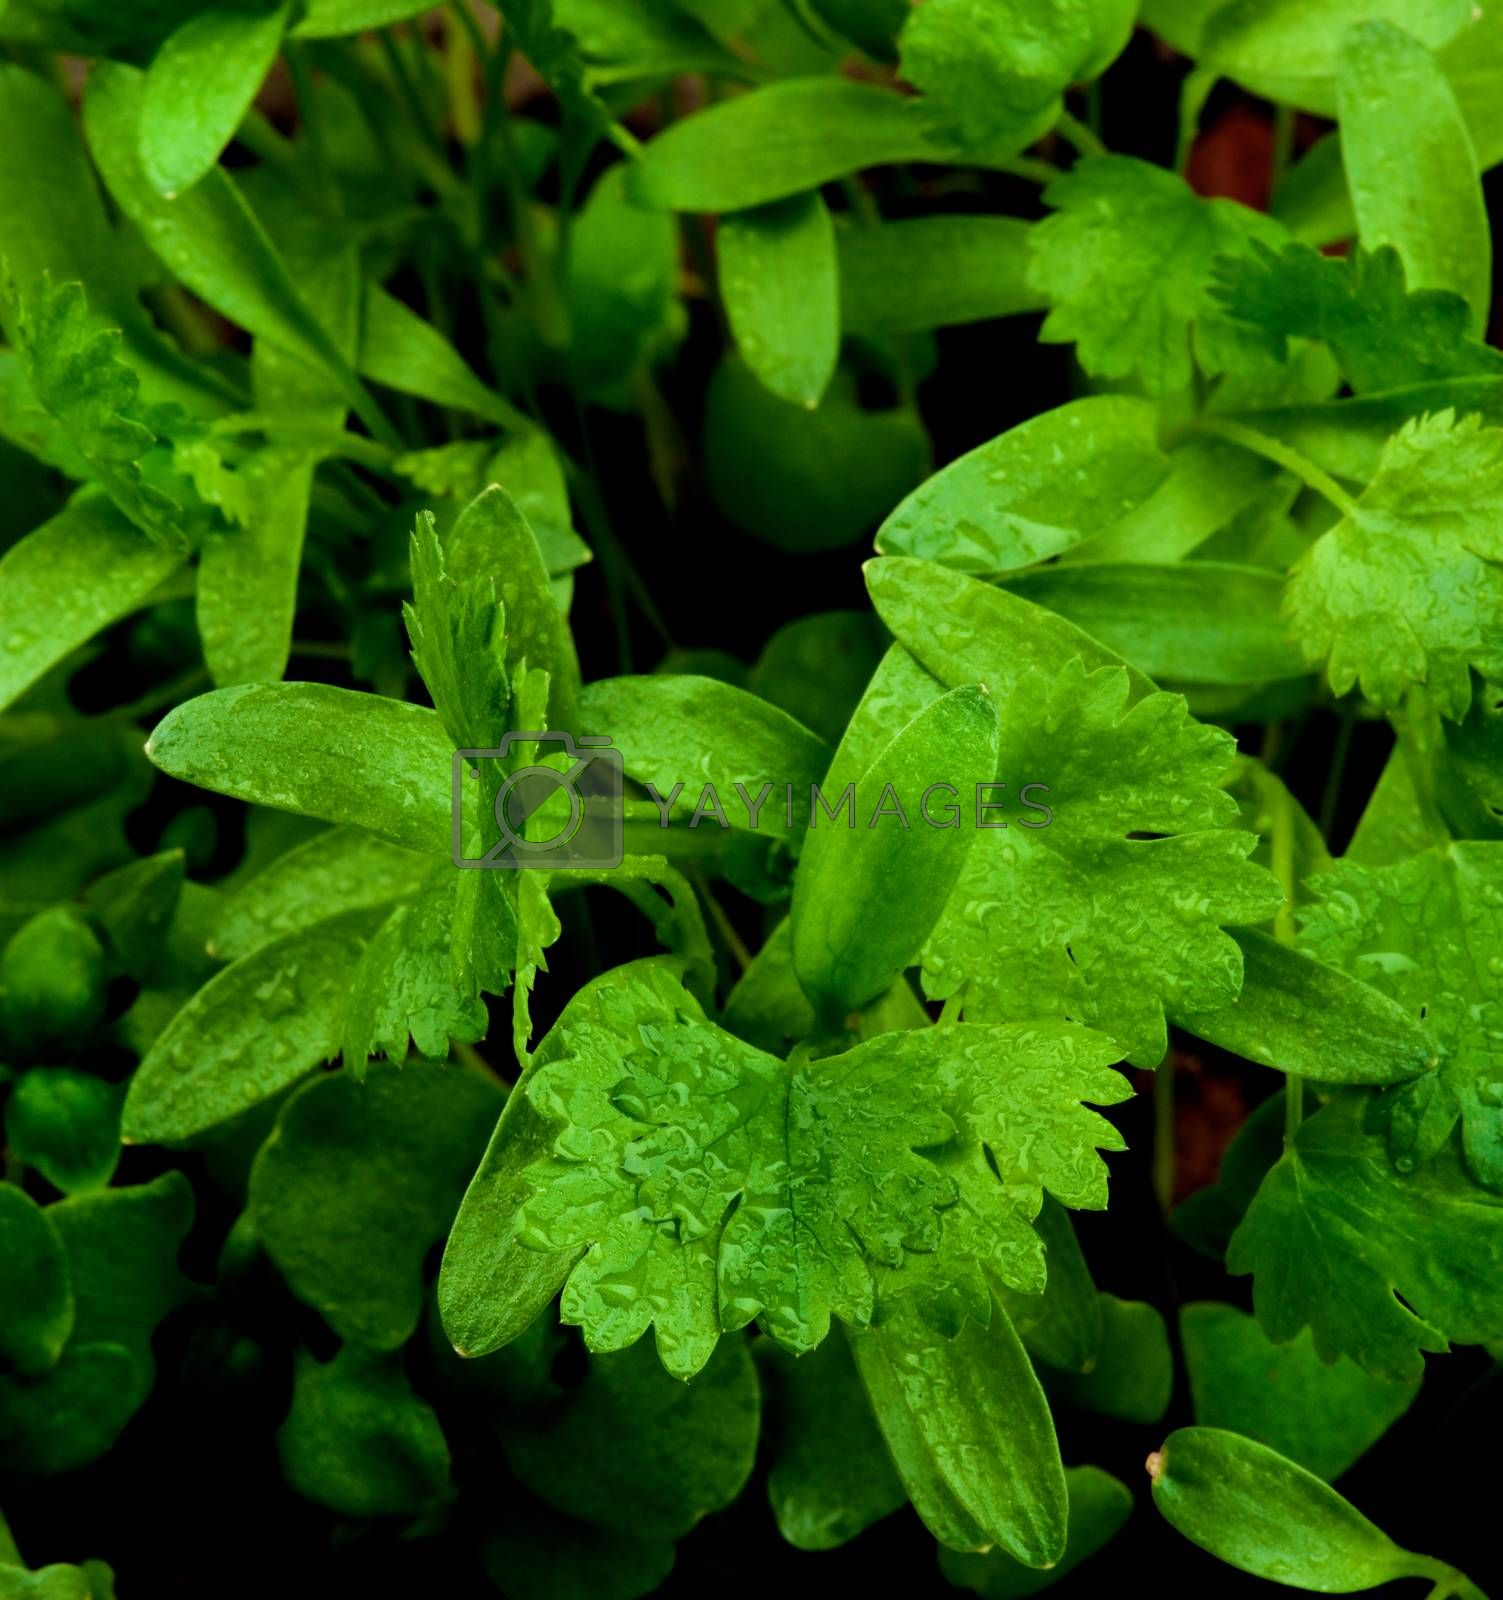 Small Young Leafs of Cilantro with Water Drops closeup on Blurred Greens. Focus on Foreground